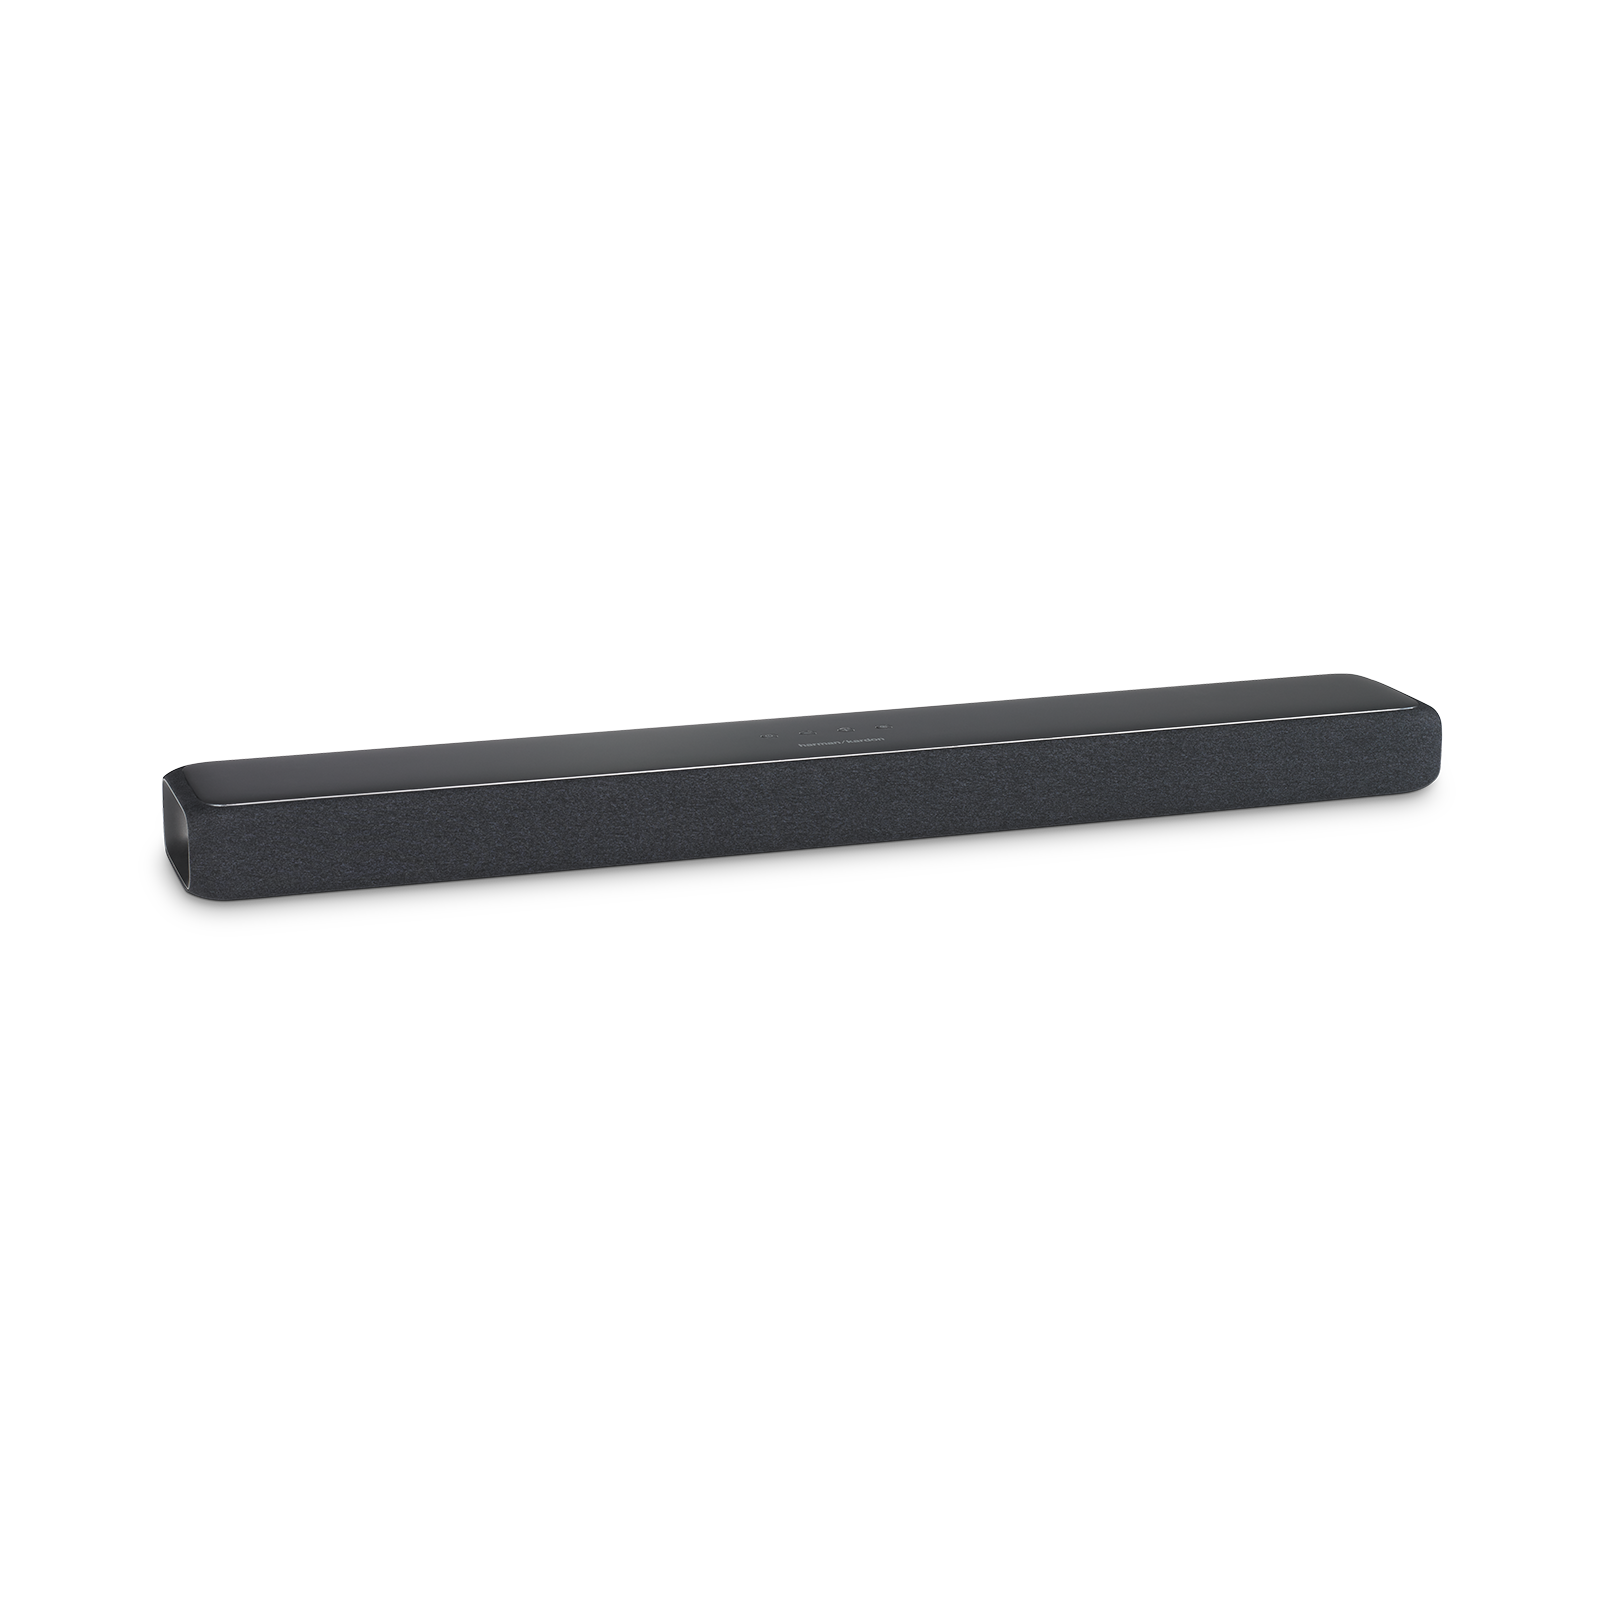 Harman Kardon Enchant  800 Soundbar